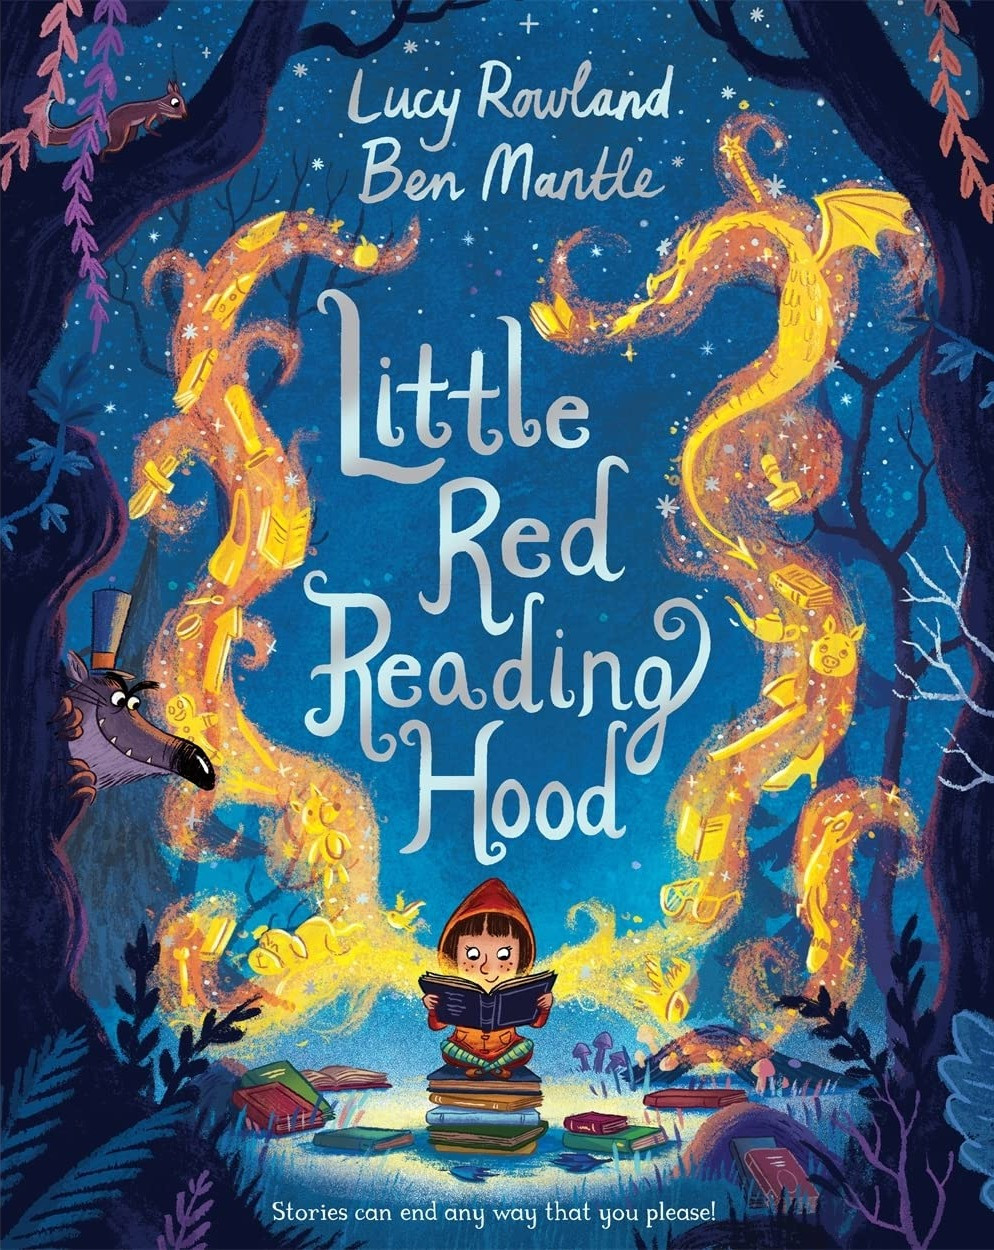 Little Red Reading Hood by Lucy Rowland and Ben Mantle, Macmillan